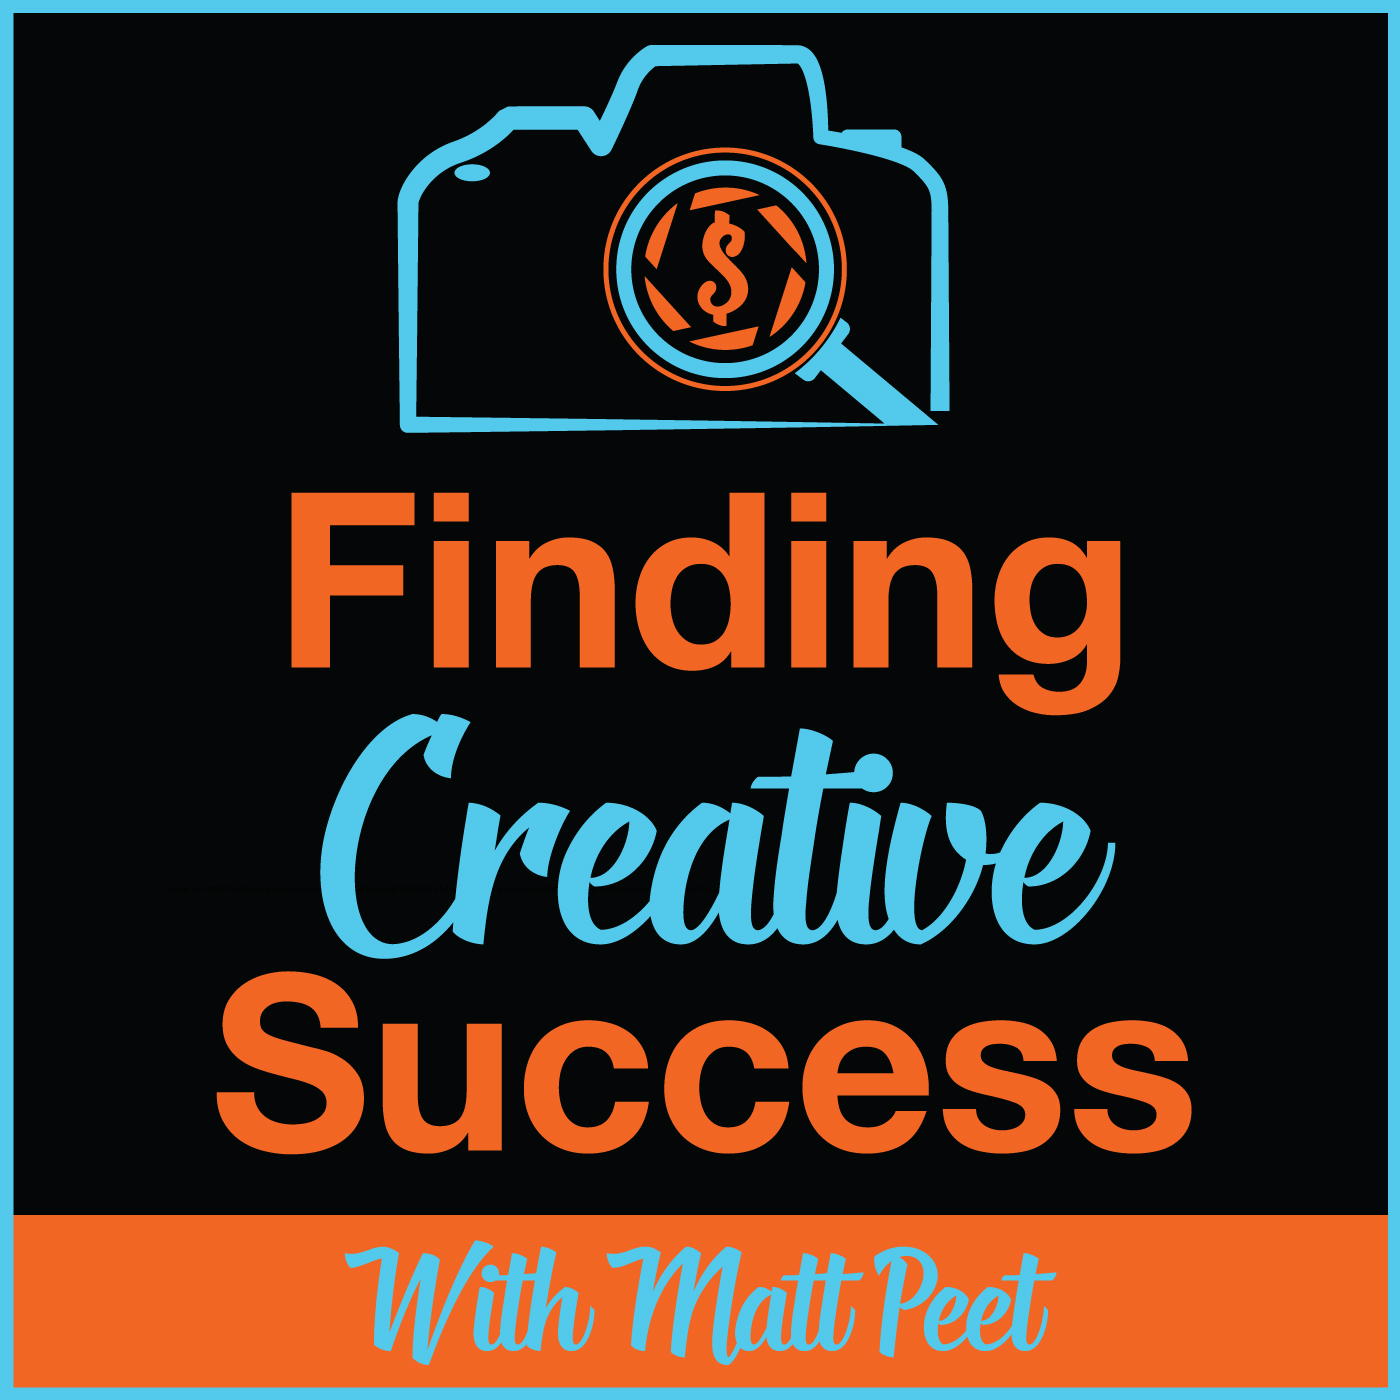 FCS 082: What is your Story? show art